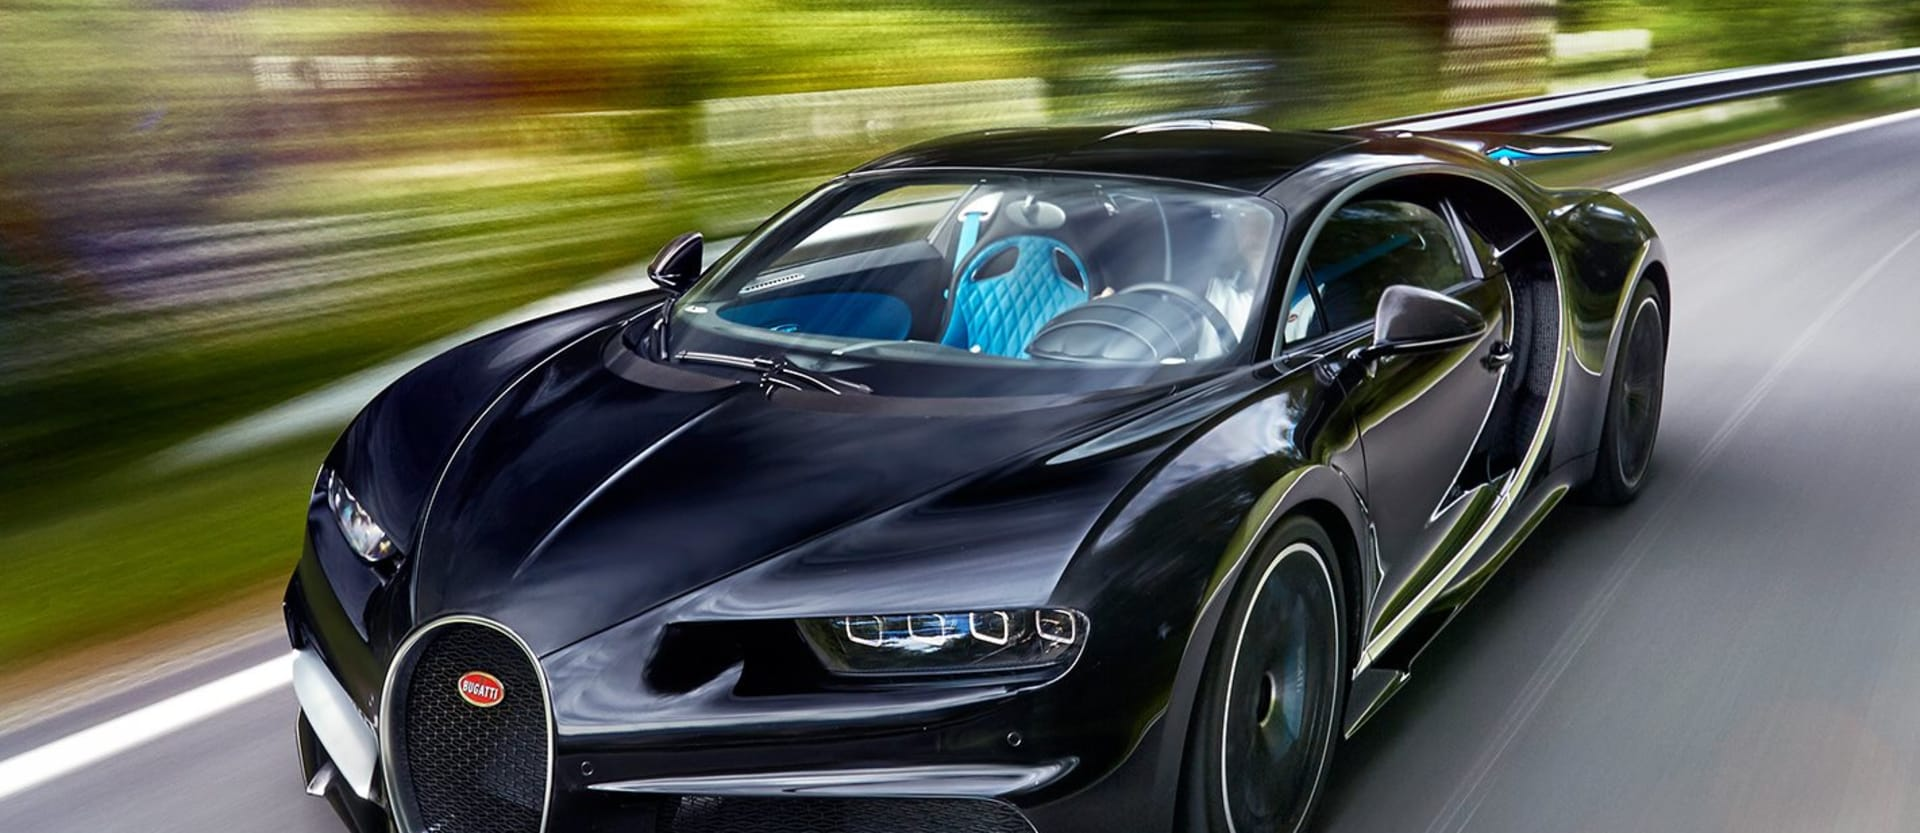 Bugatti Chiron secrets revealed